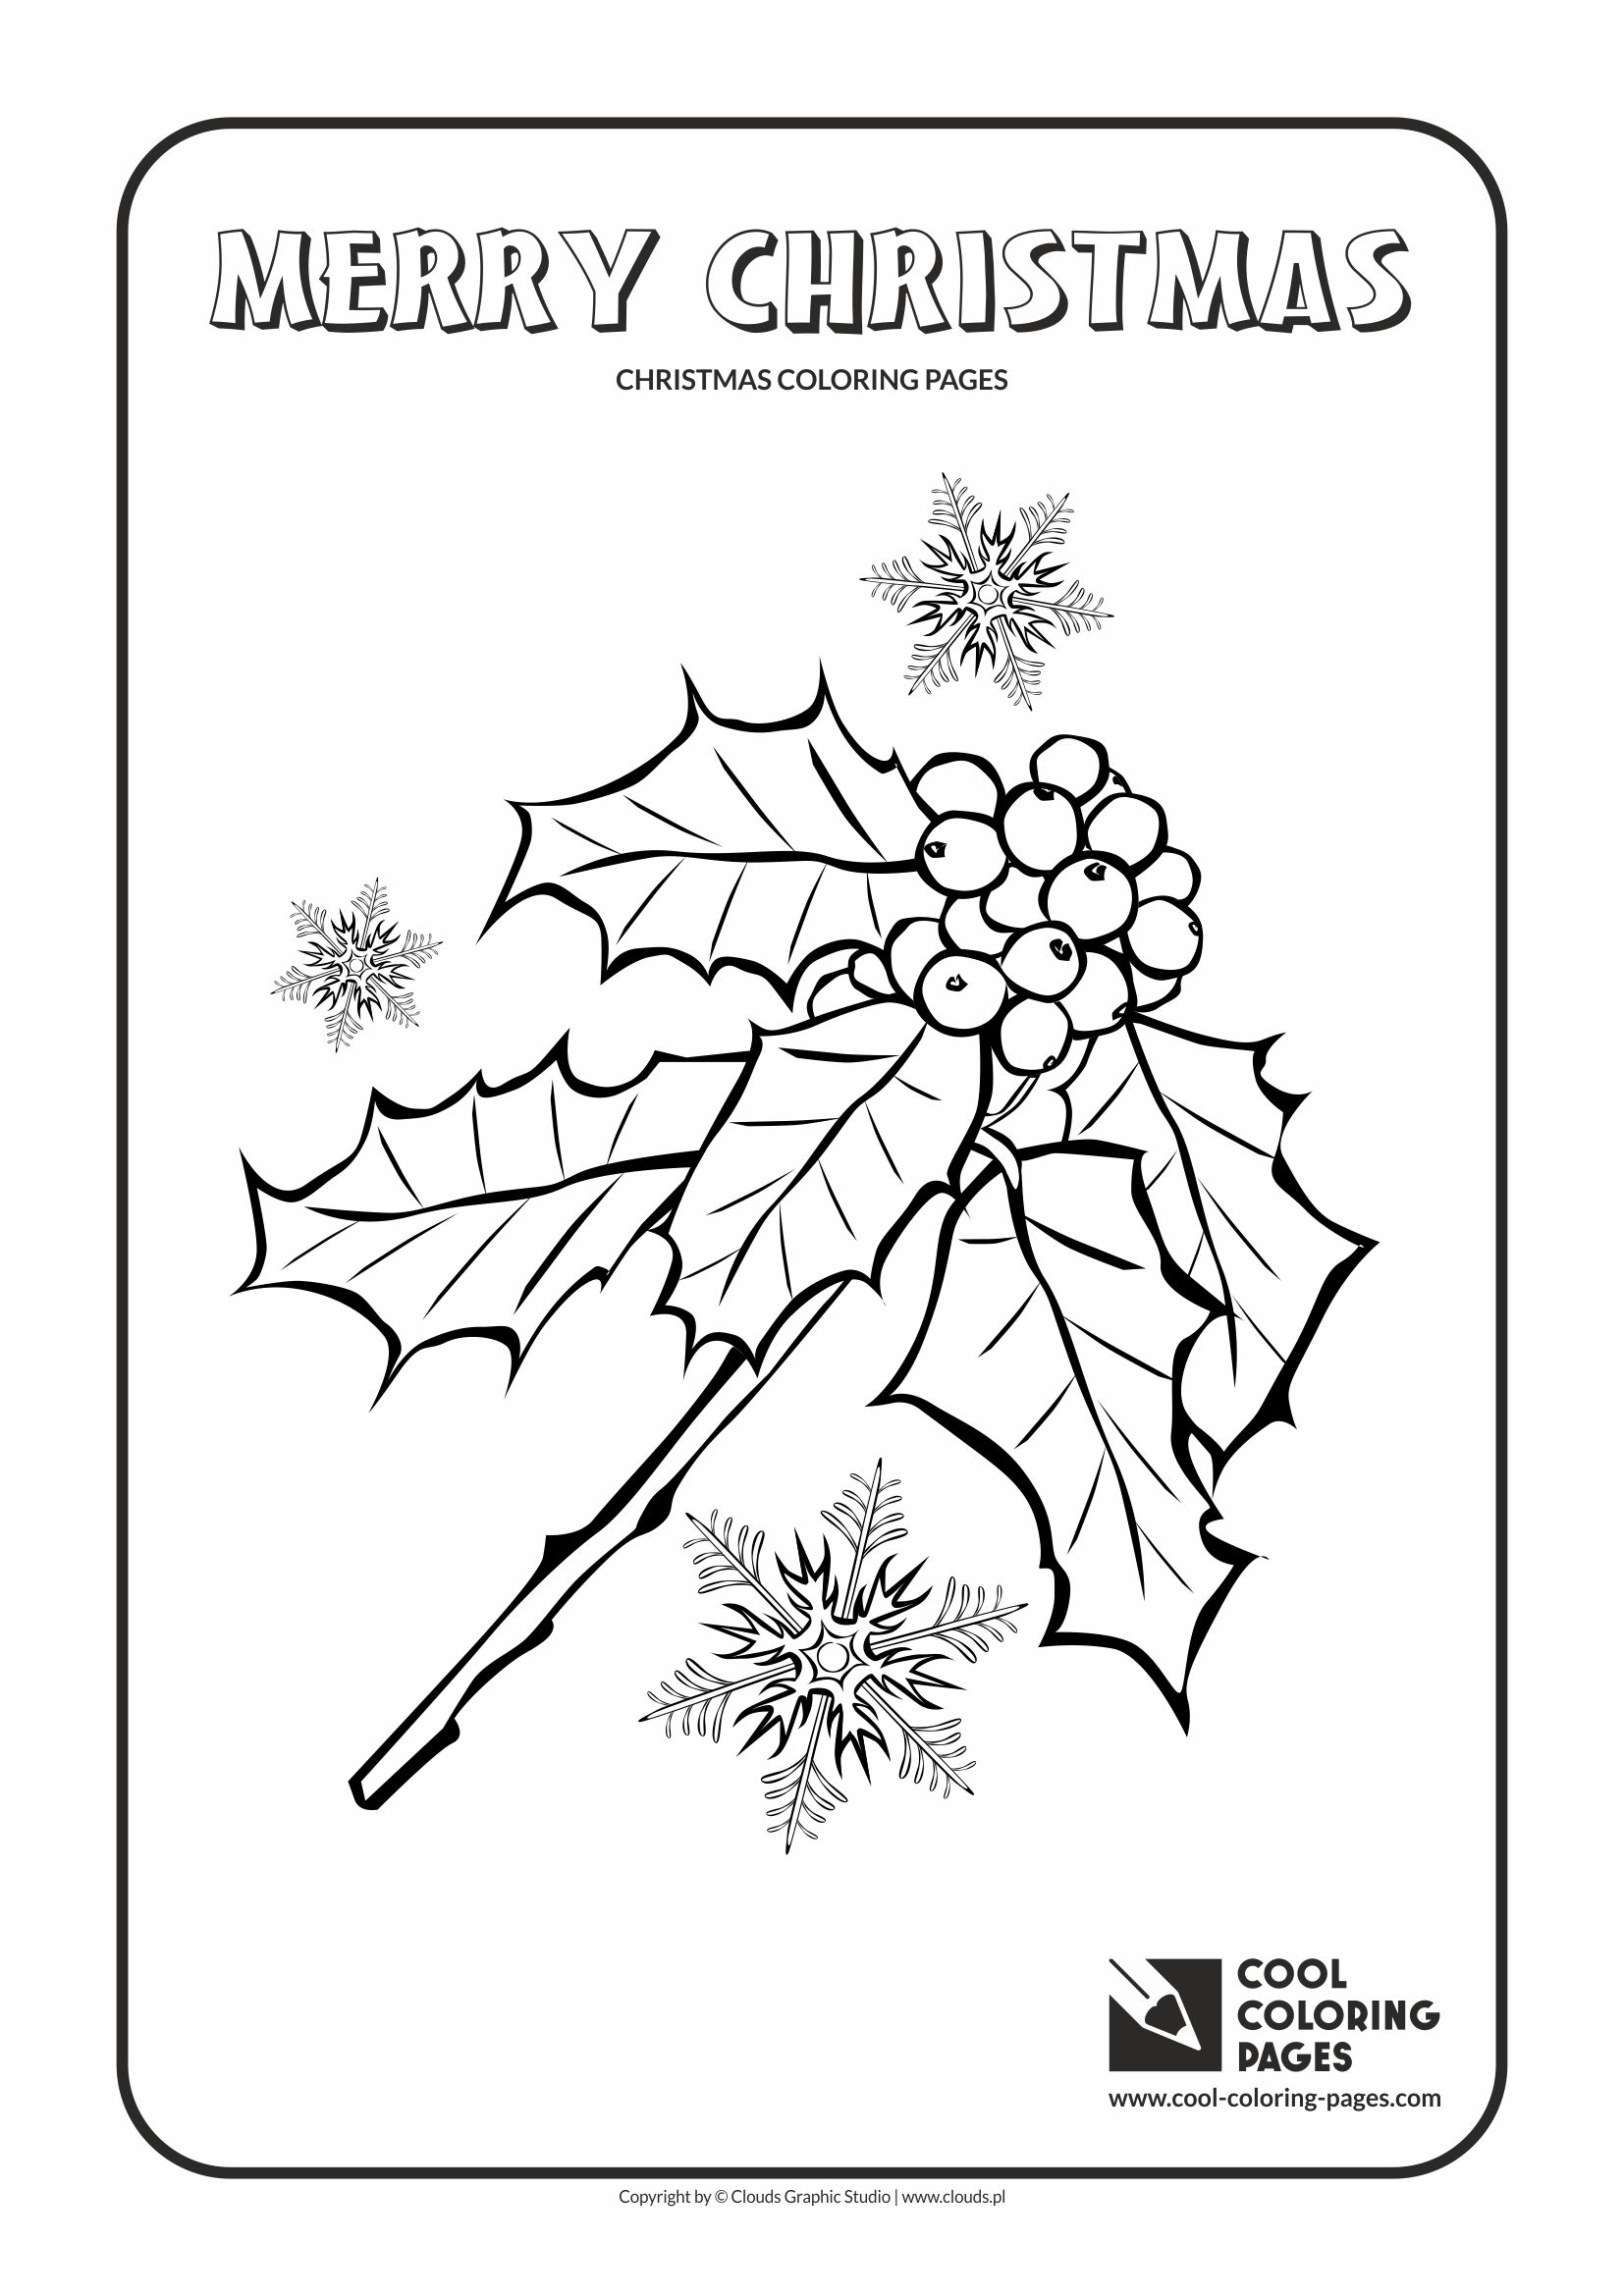 Cool Coloring Pages - Holidays / Holly Berries / Coloring page with Holly Berries